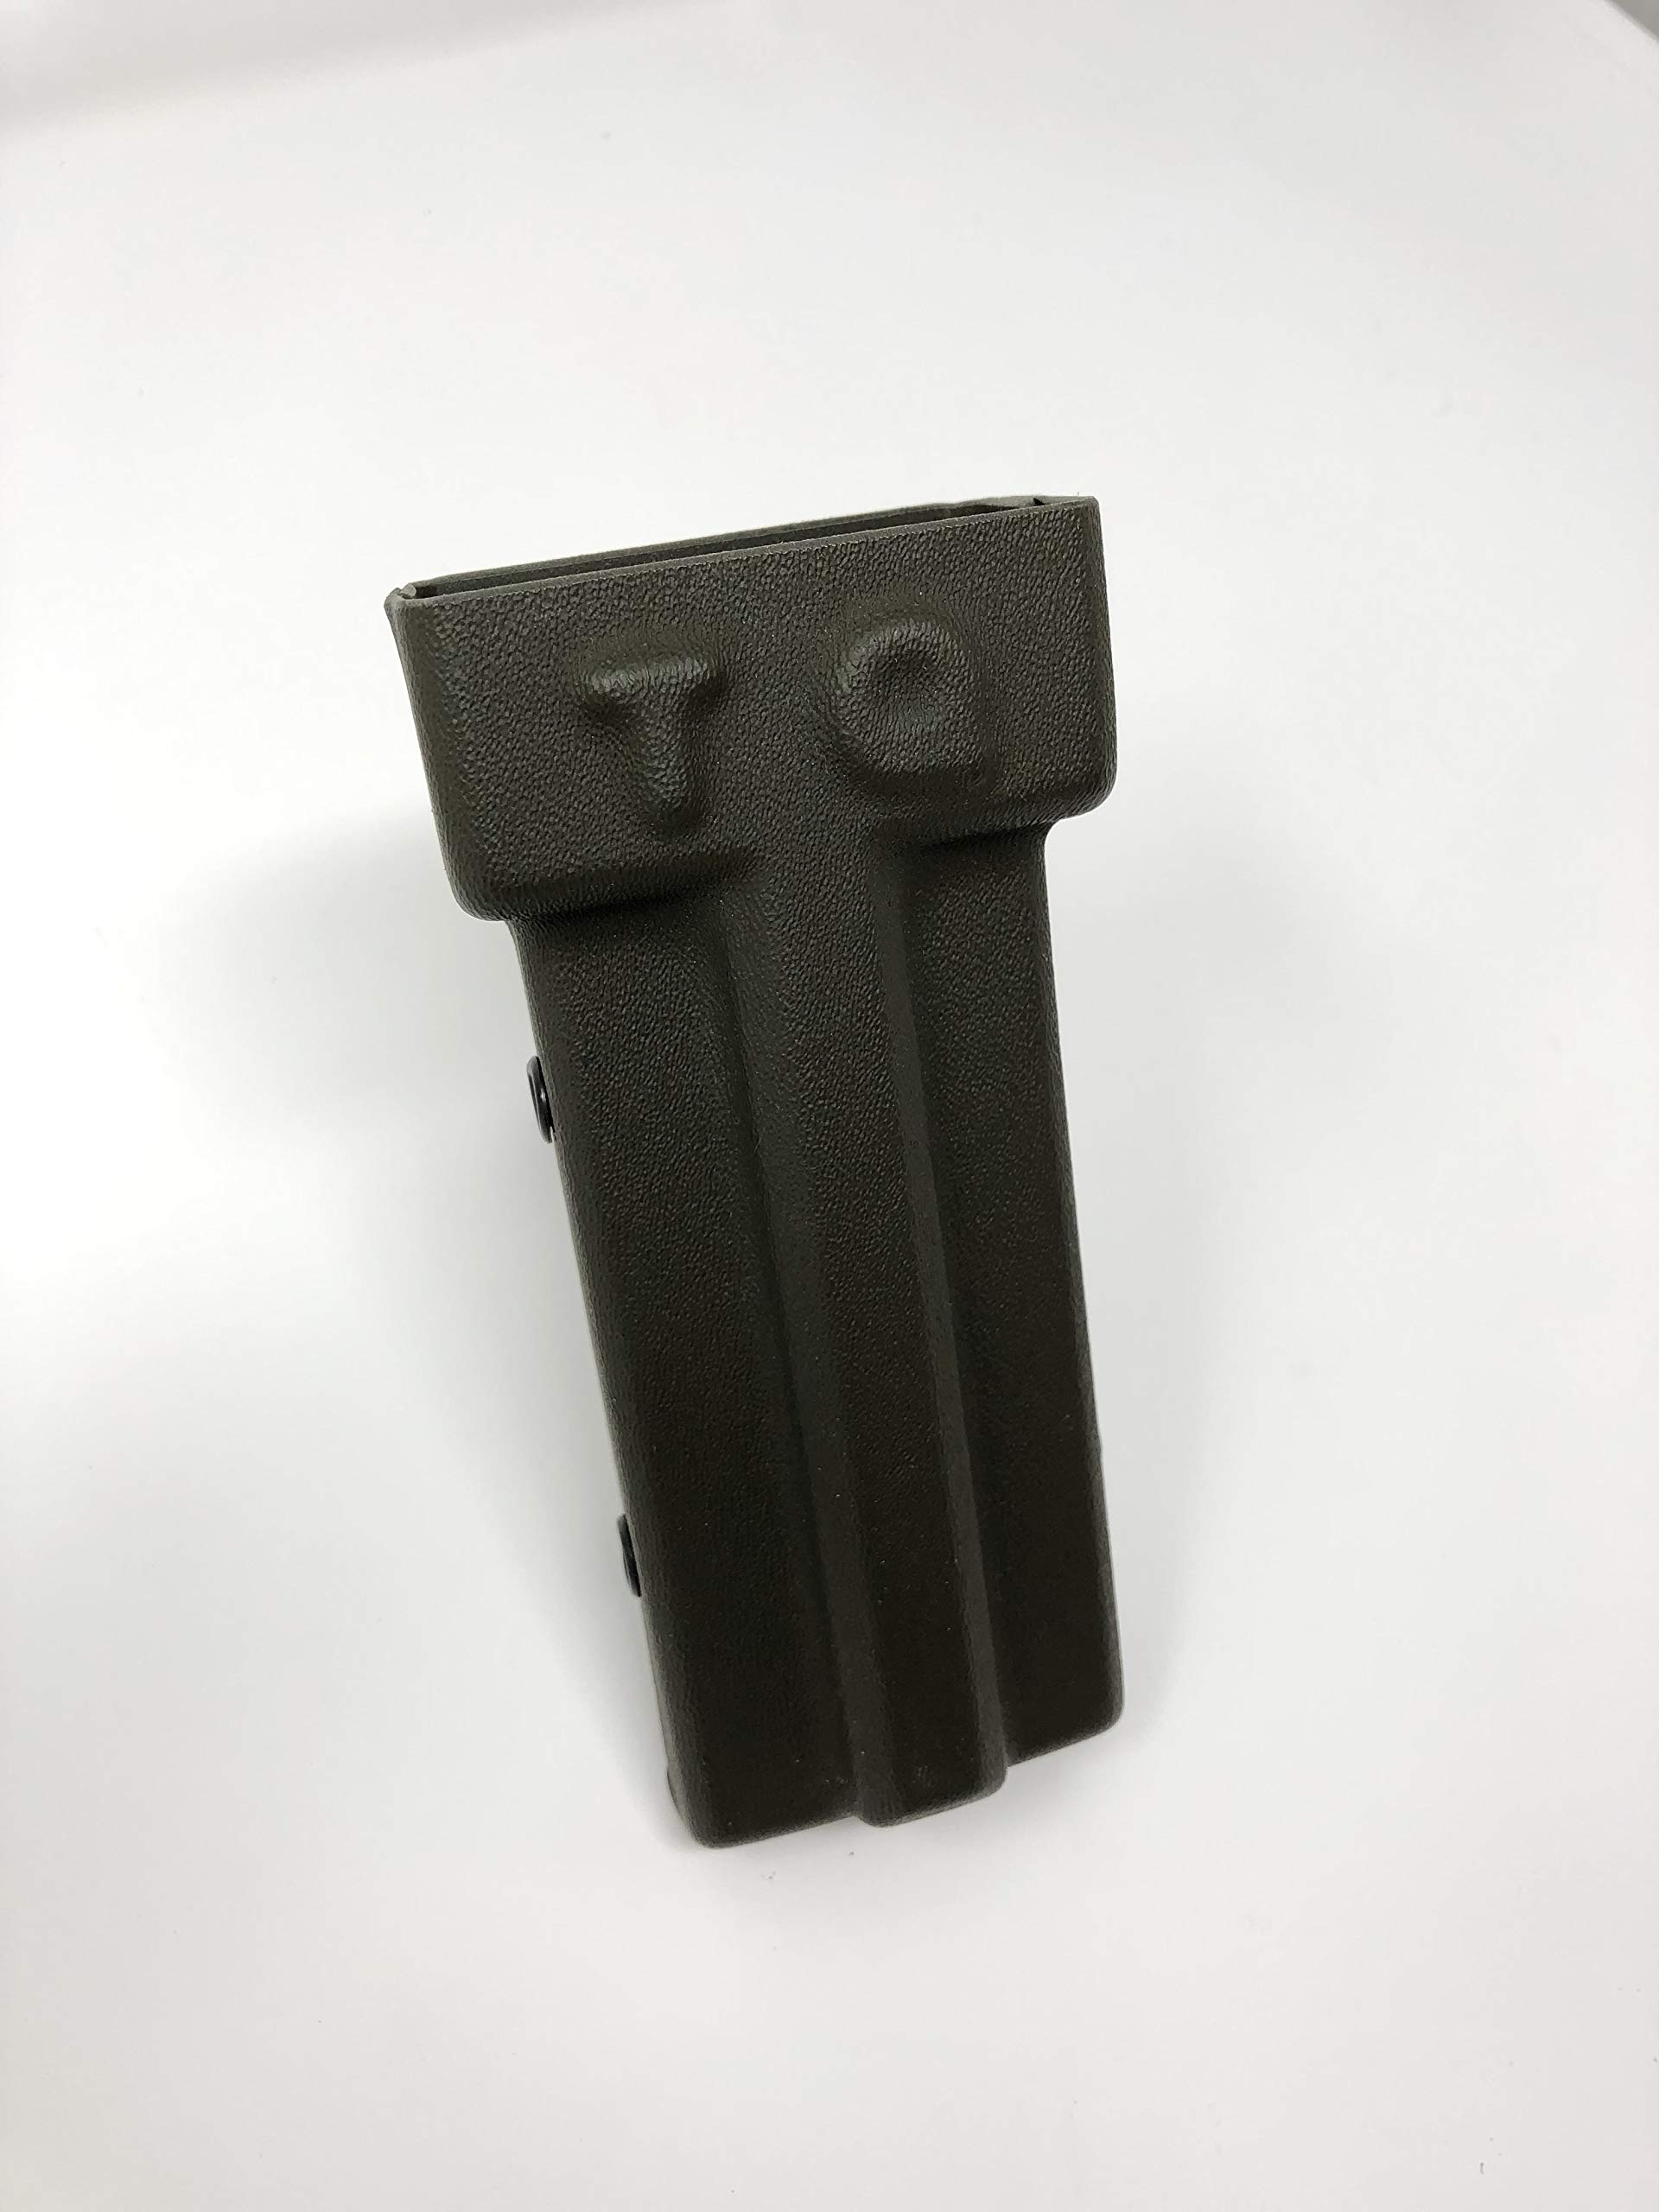 Gladius Holsters Tourniquet Holster with Molle Attachment (OD Green) by Gladius Holsters (Image #1)